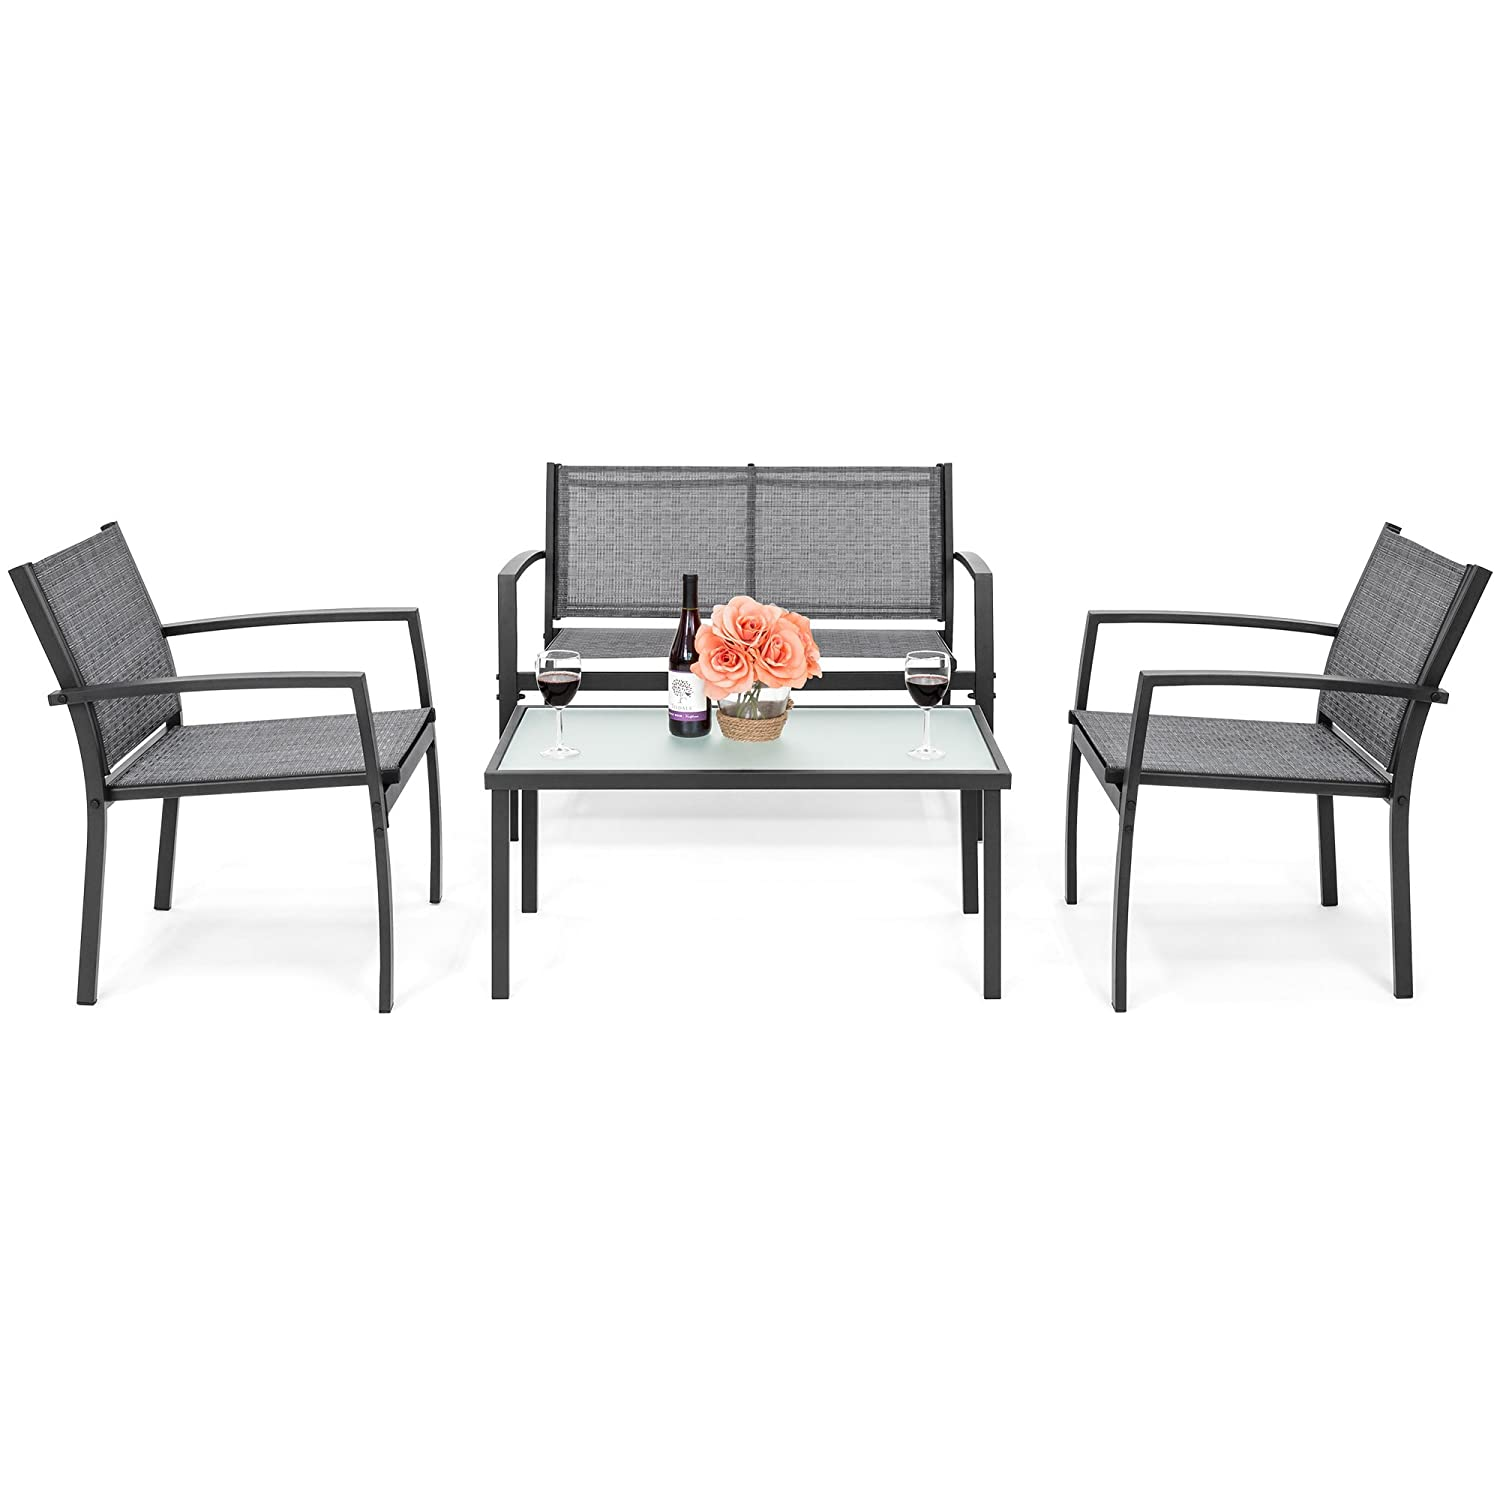 Best Choice Products 4-Piece Patio Metal Conversation Furniture Set w/Loveseat, 2 Chairs, and Glass Coffee Table- Gray SKY4712